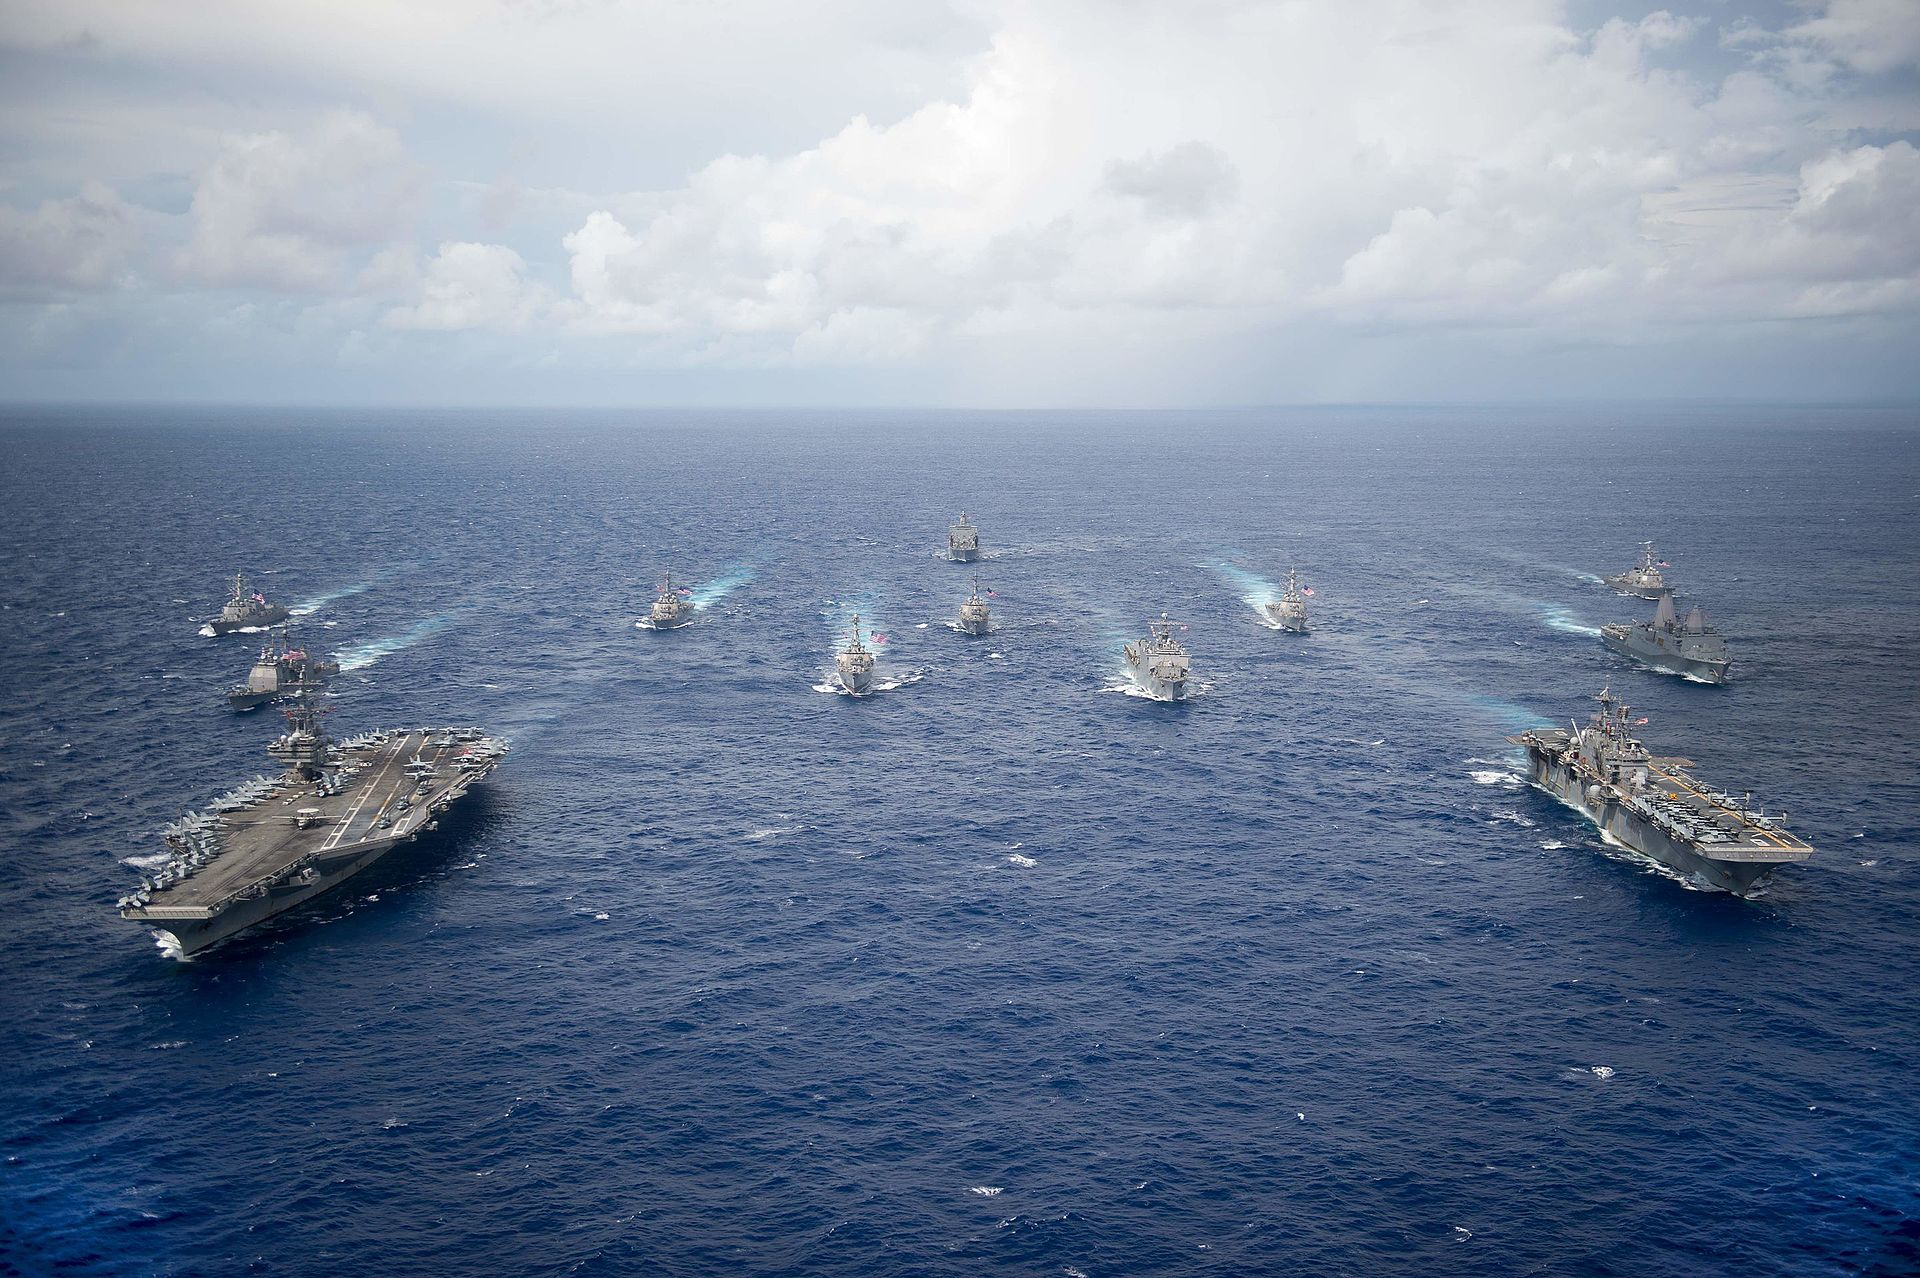 The USS Ronald Reagan and USS Bonhomme Richard lead a formation of Carrier Strike and Expeditionary Strike Group in the South Chin Sea. (Sept. 23, 2016)